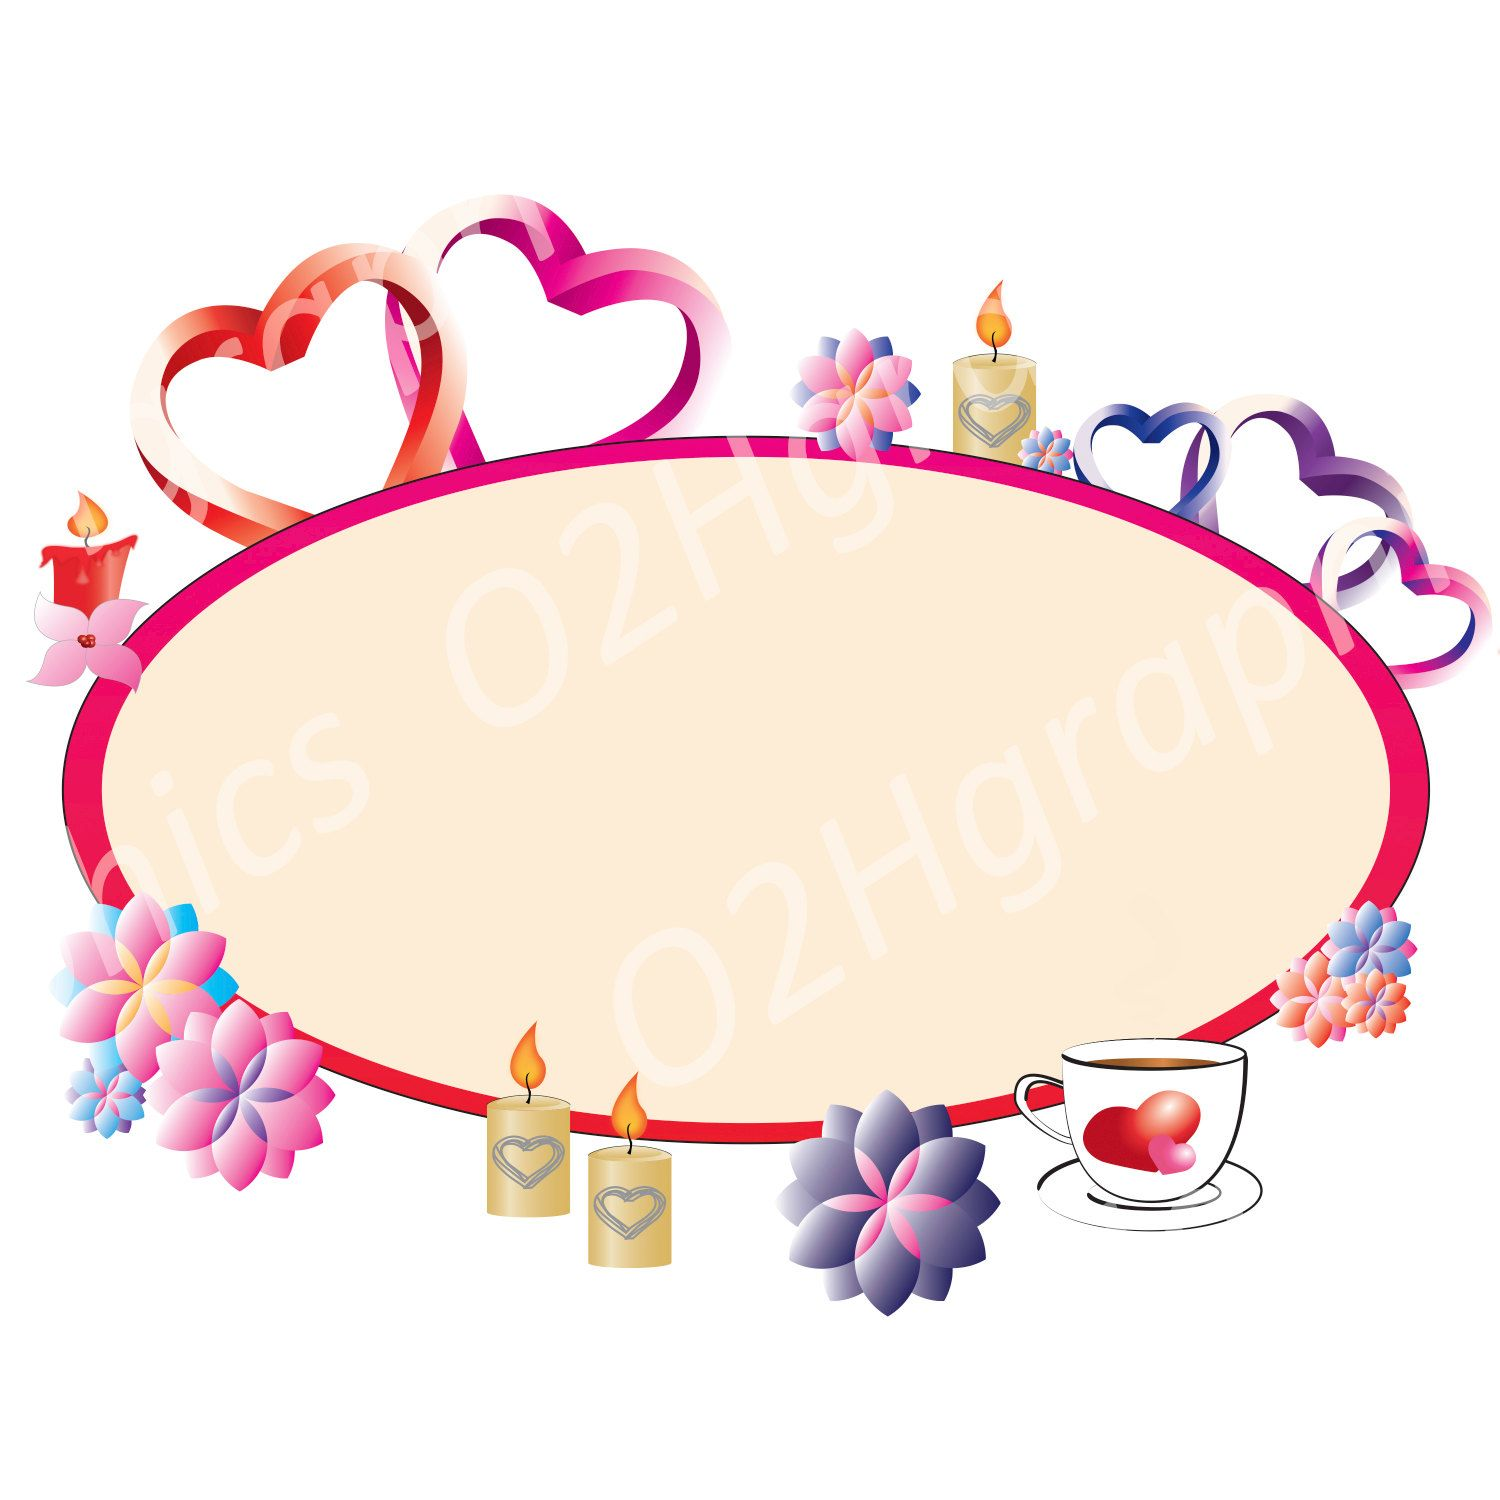 1500x1500 Valentine's Day Card Clipart Clip Art, Vector Clipart, Digital